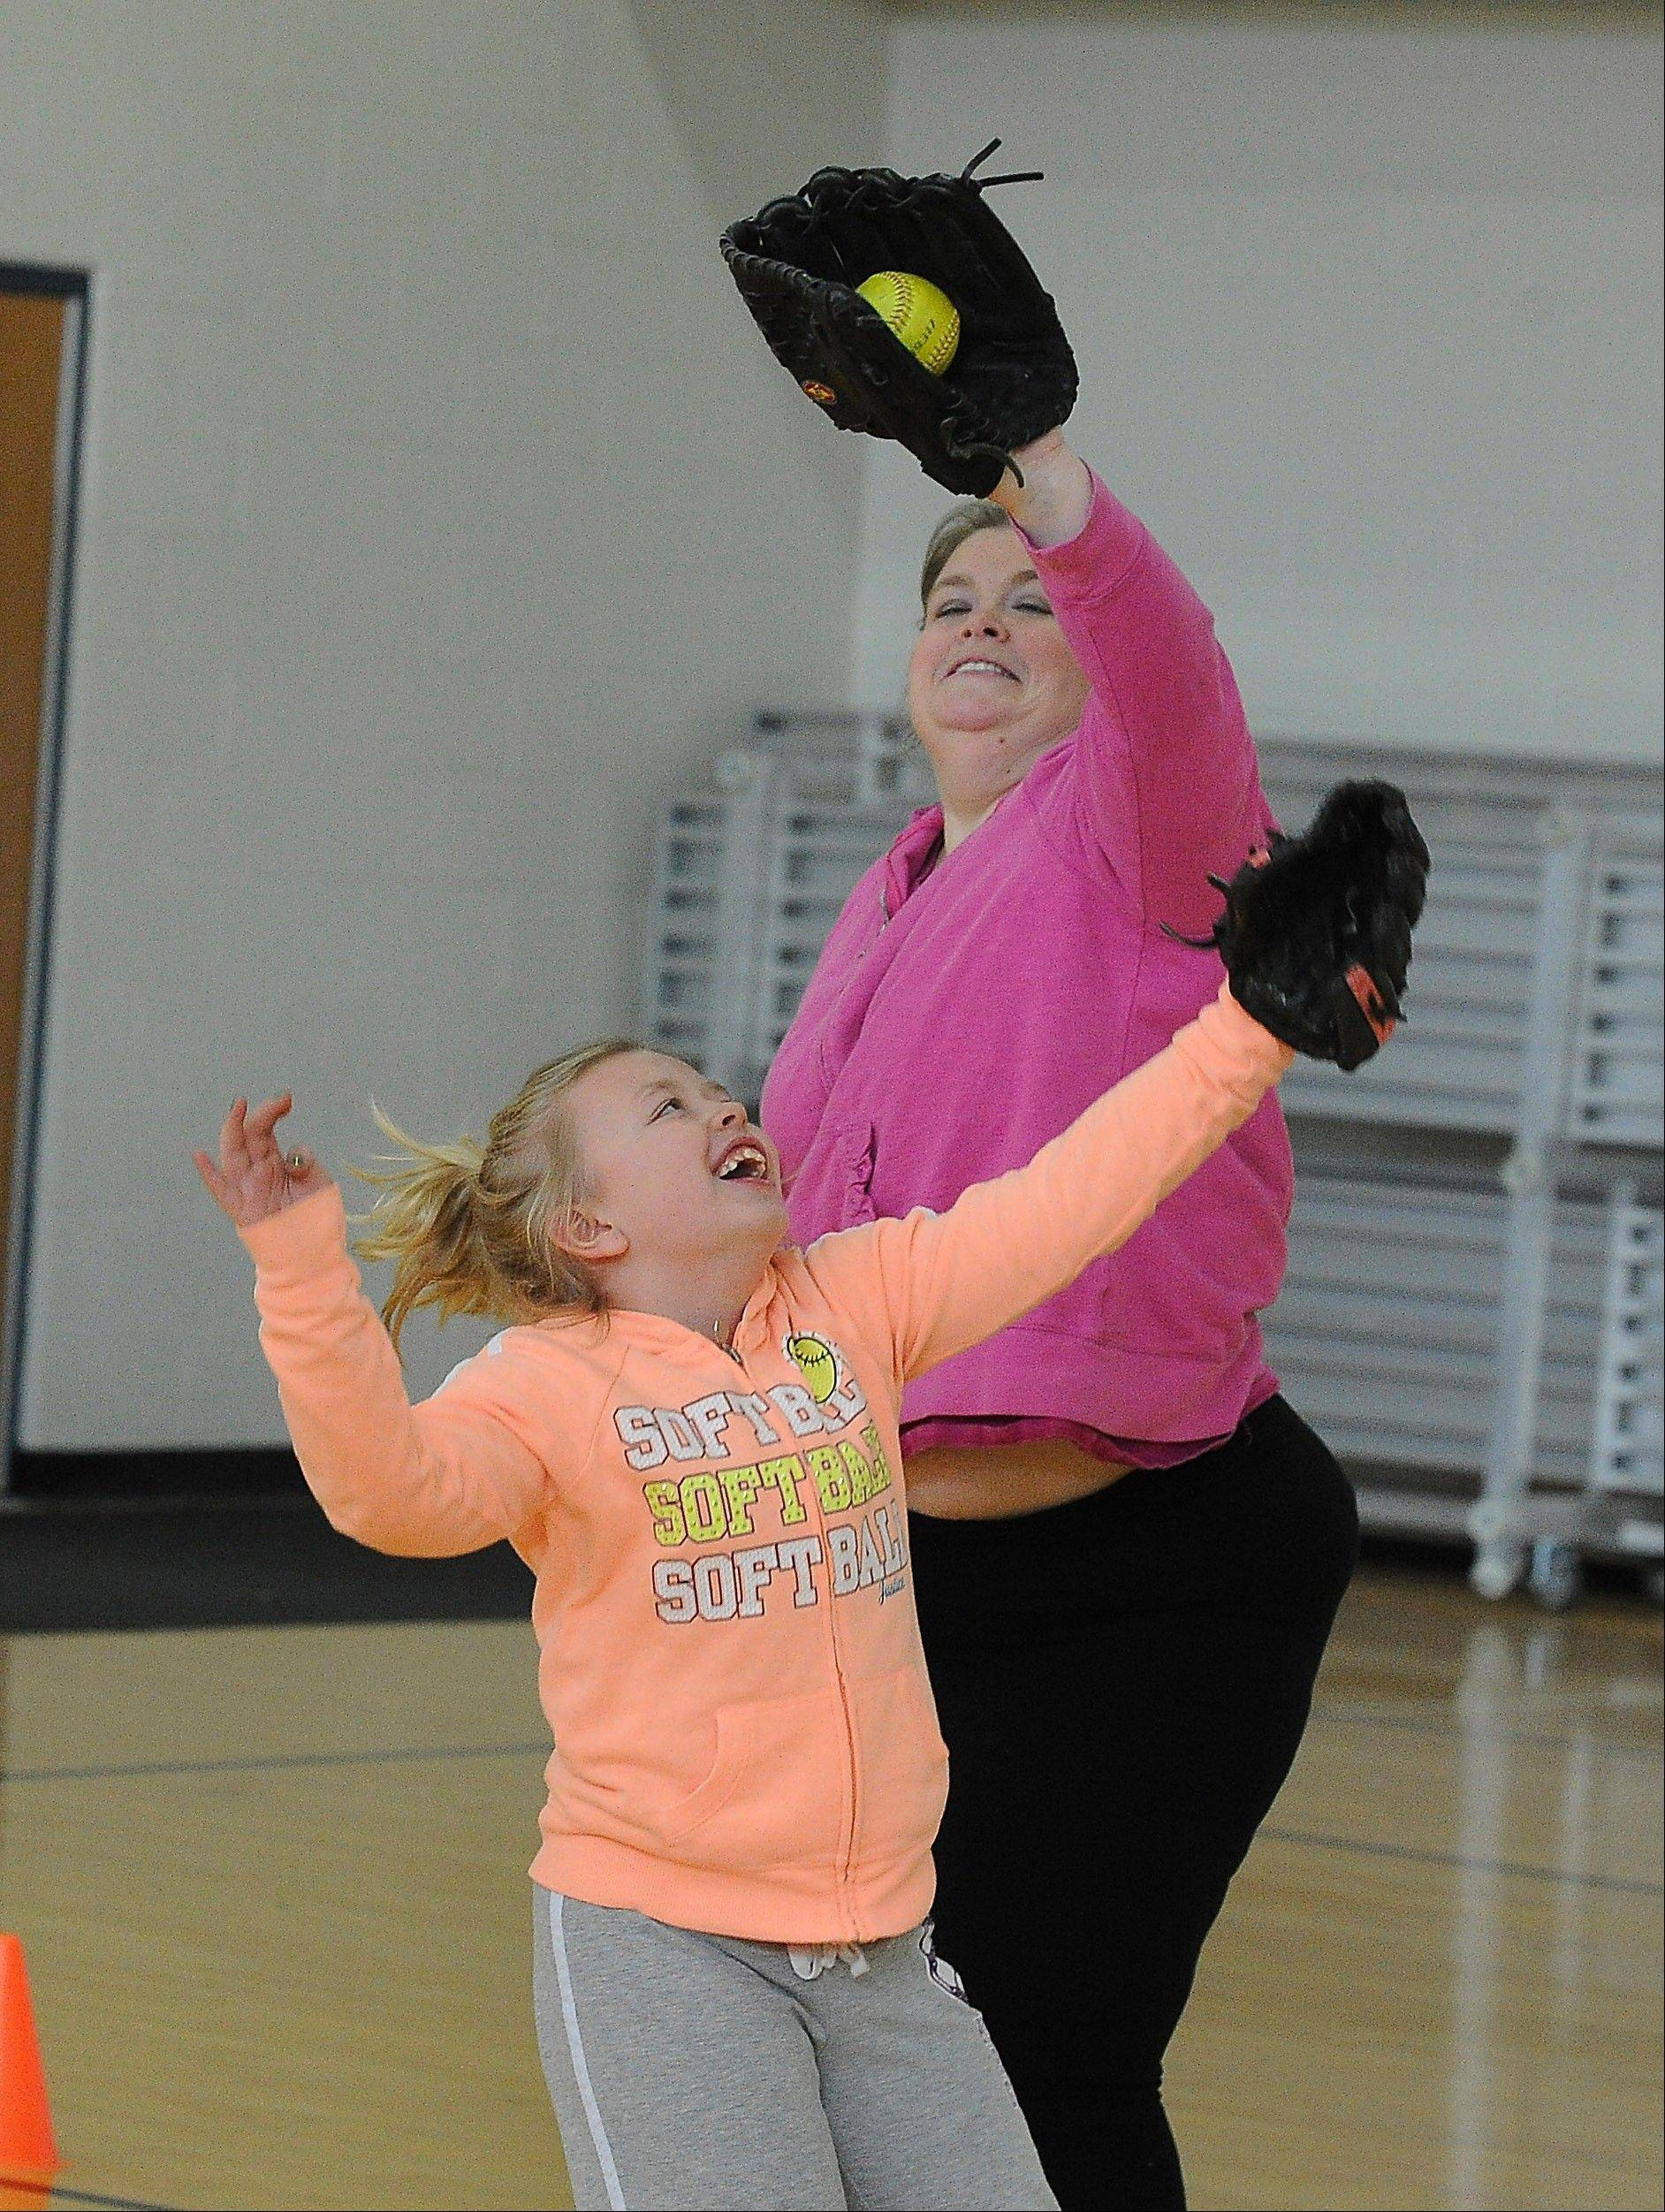 Megan McCarthy-Cook and her daughter, 8-year-old Molly, play catch at the Hoffman Estates Park District gym.